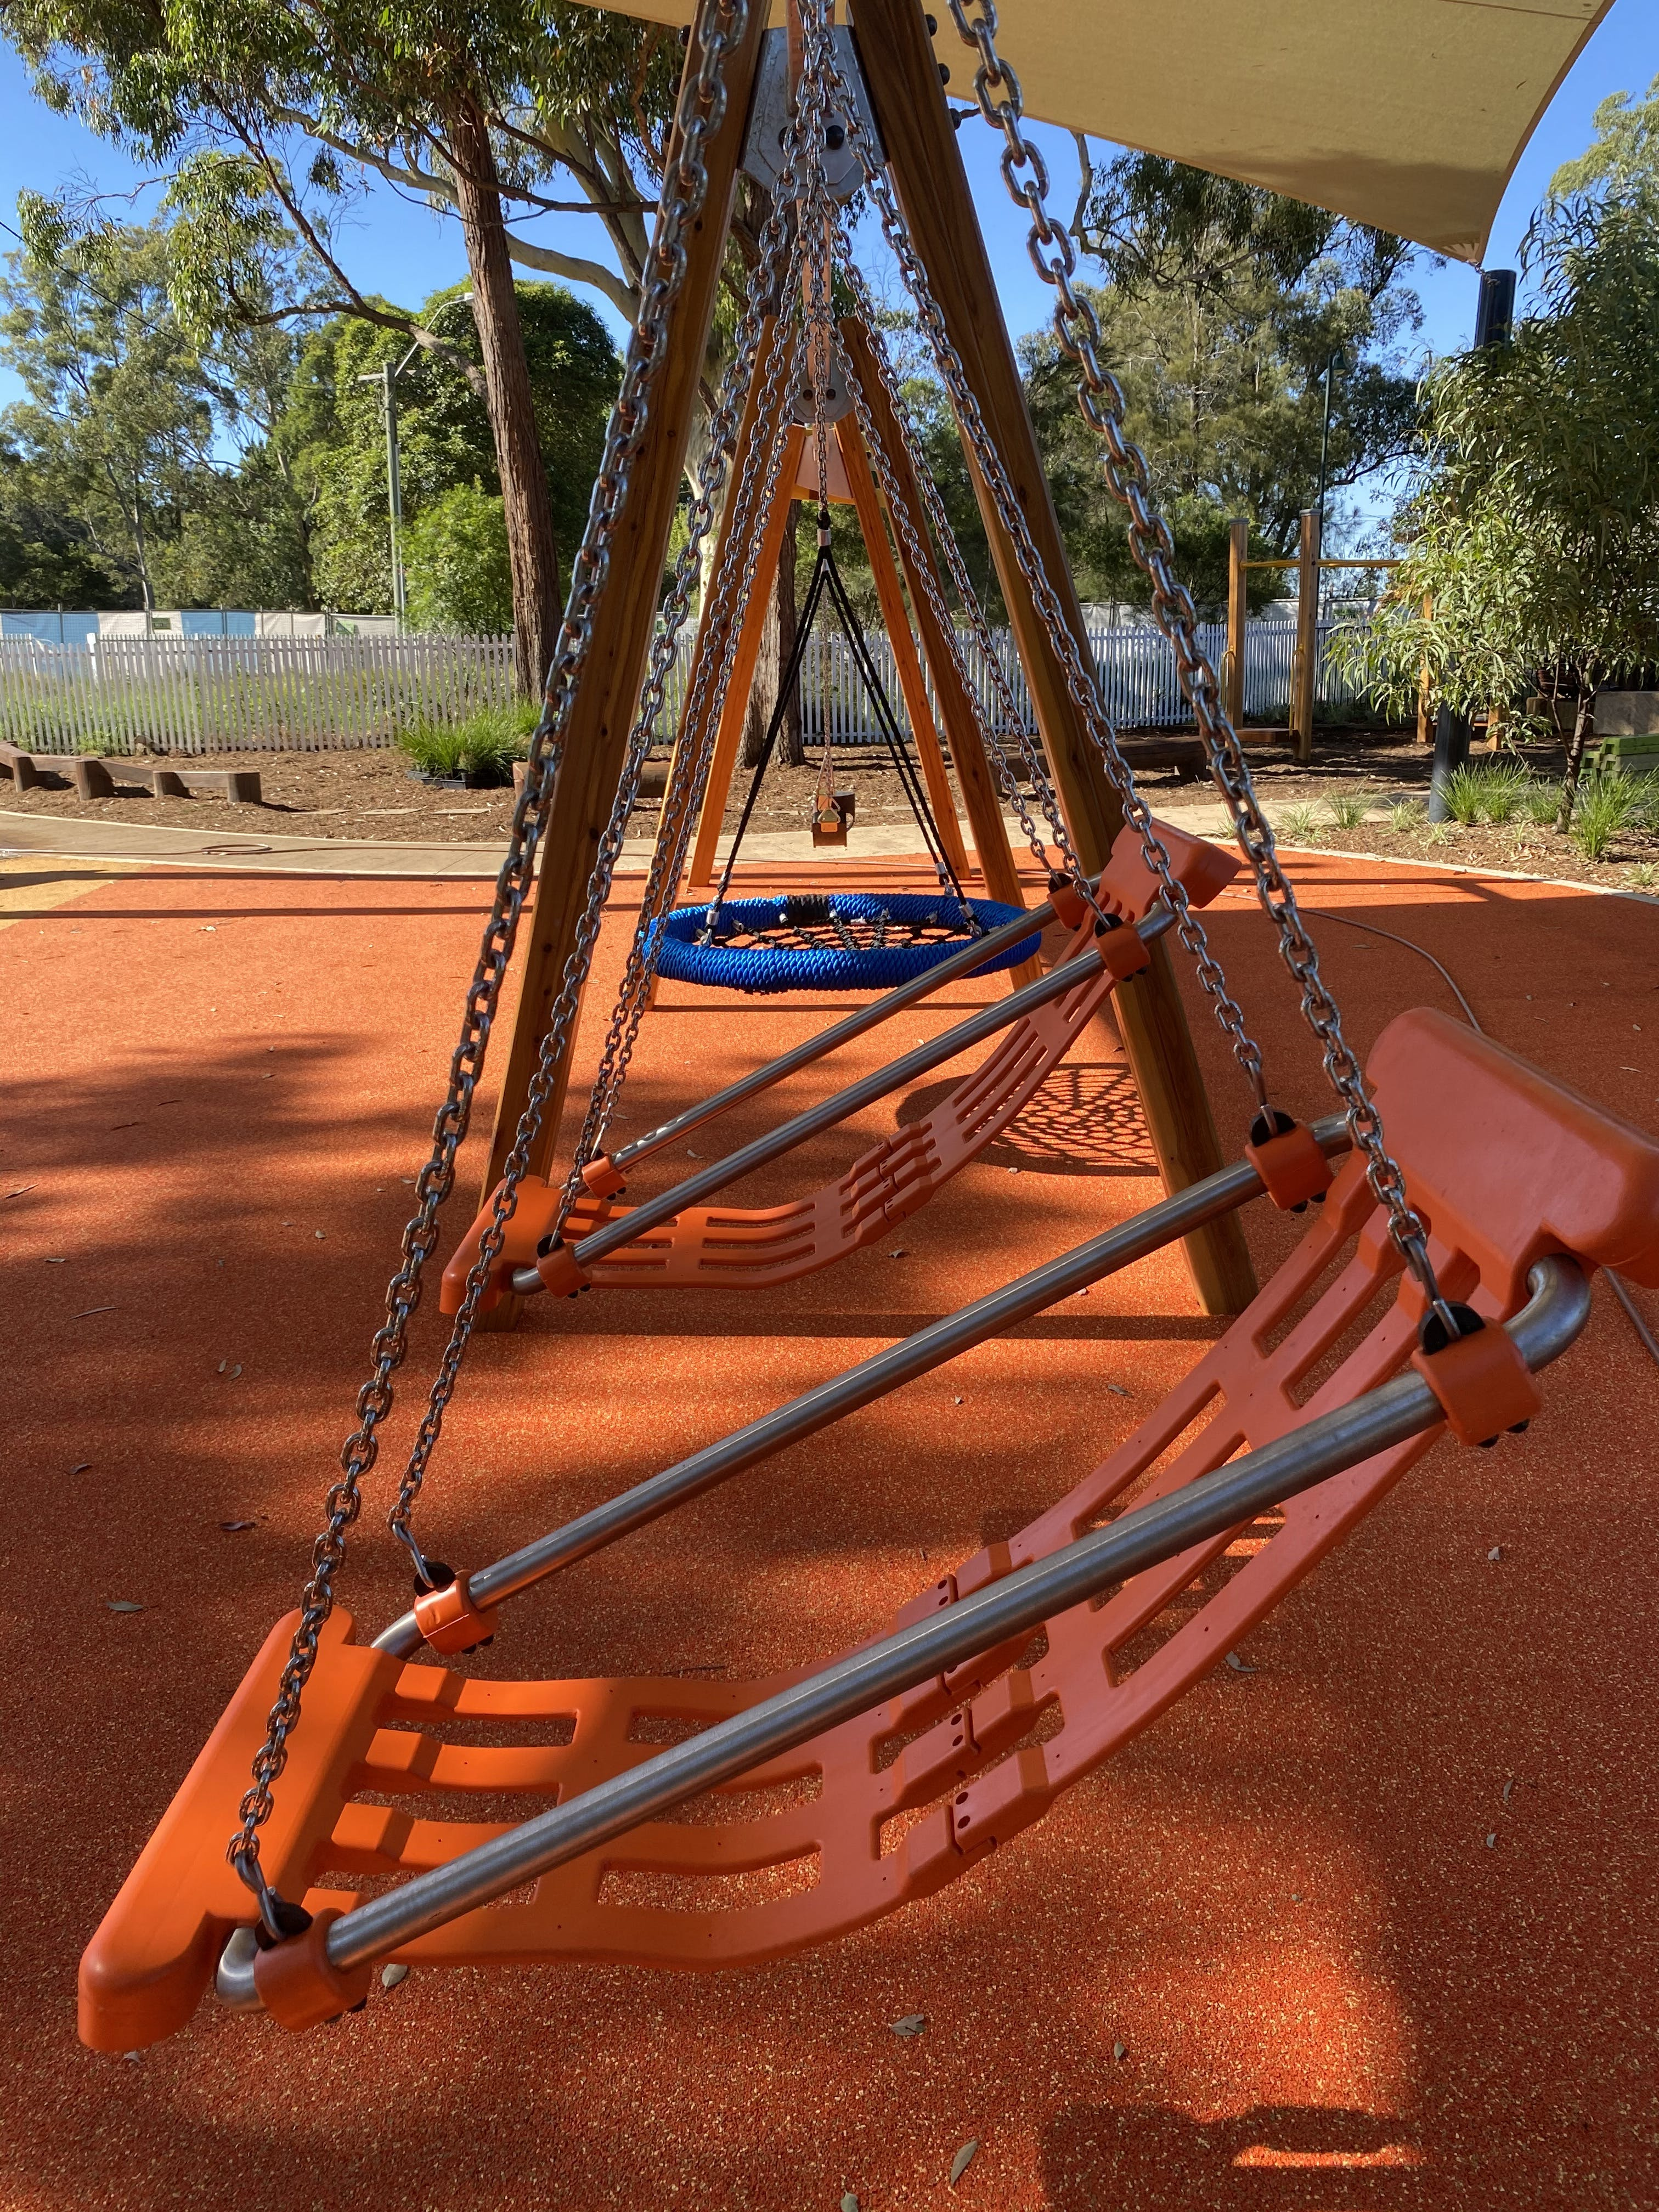 Inclusive swing set under shade sails